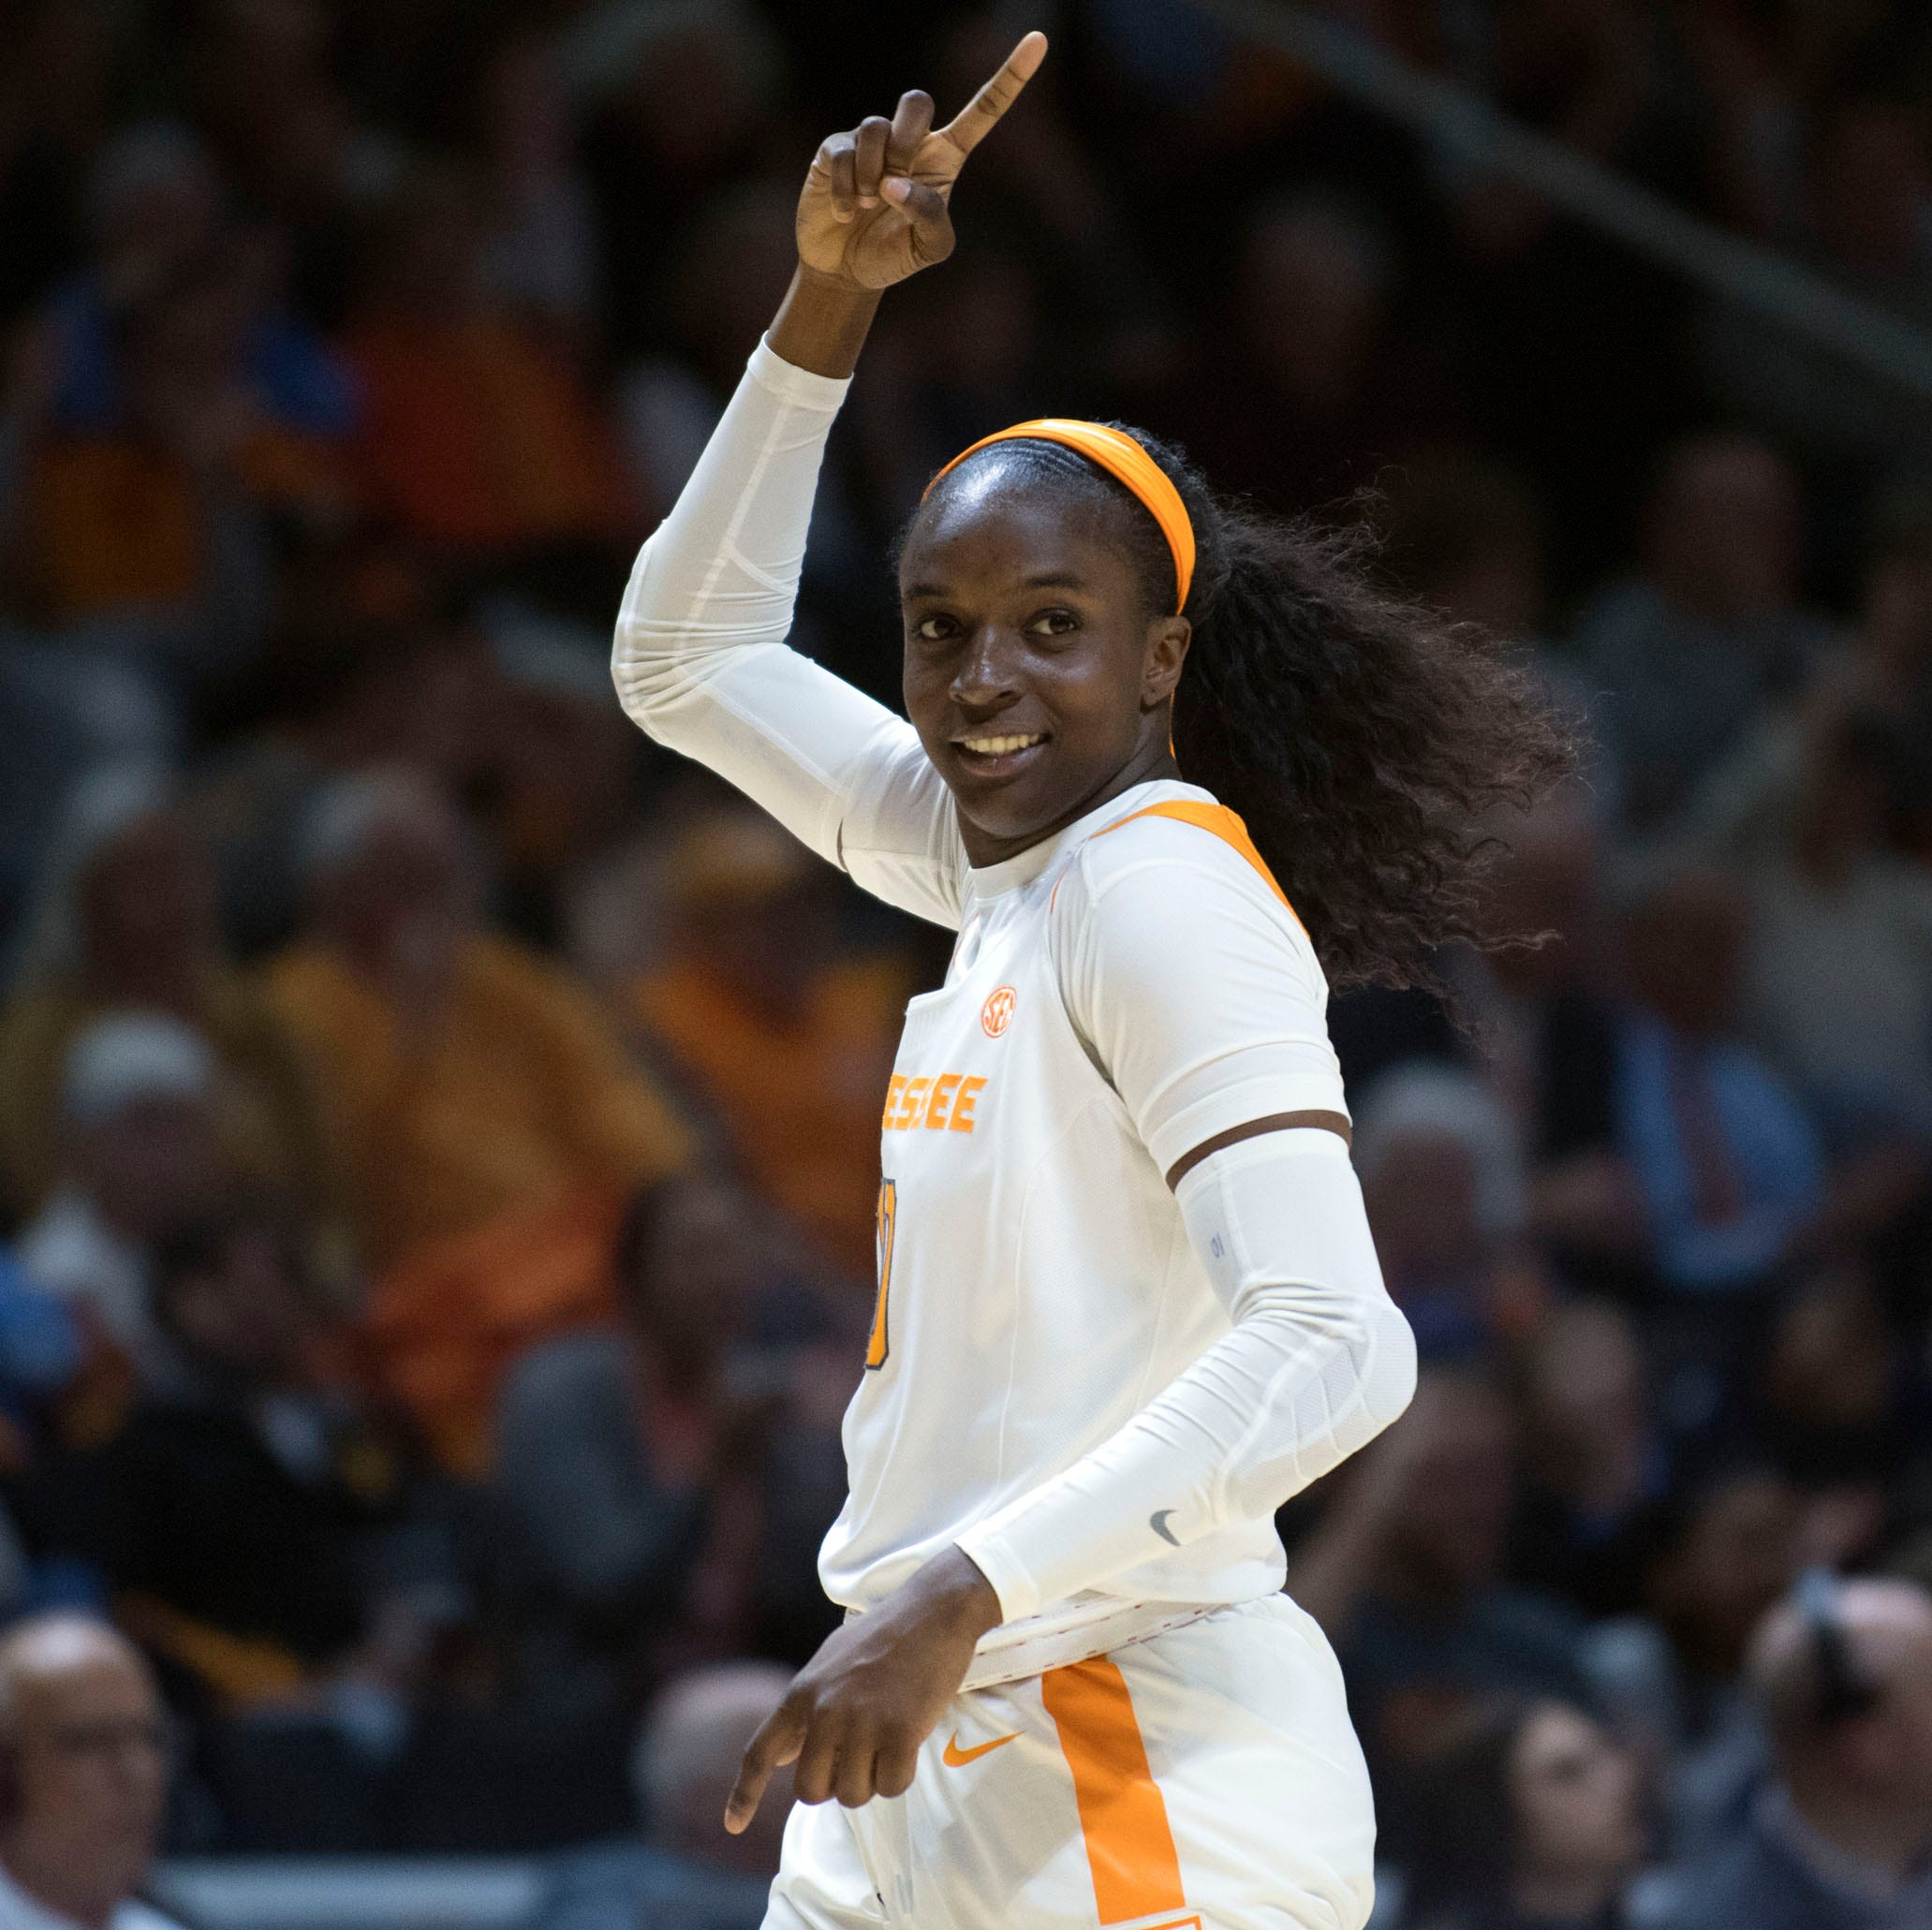 UT Lady Vols beat Texas 88-82 thanks largely to career-high 33 points from Meme Jackson